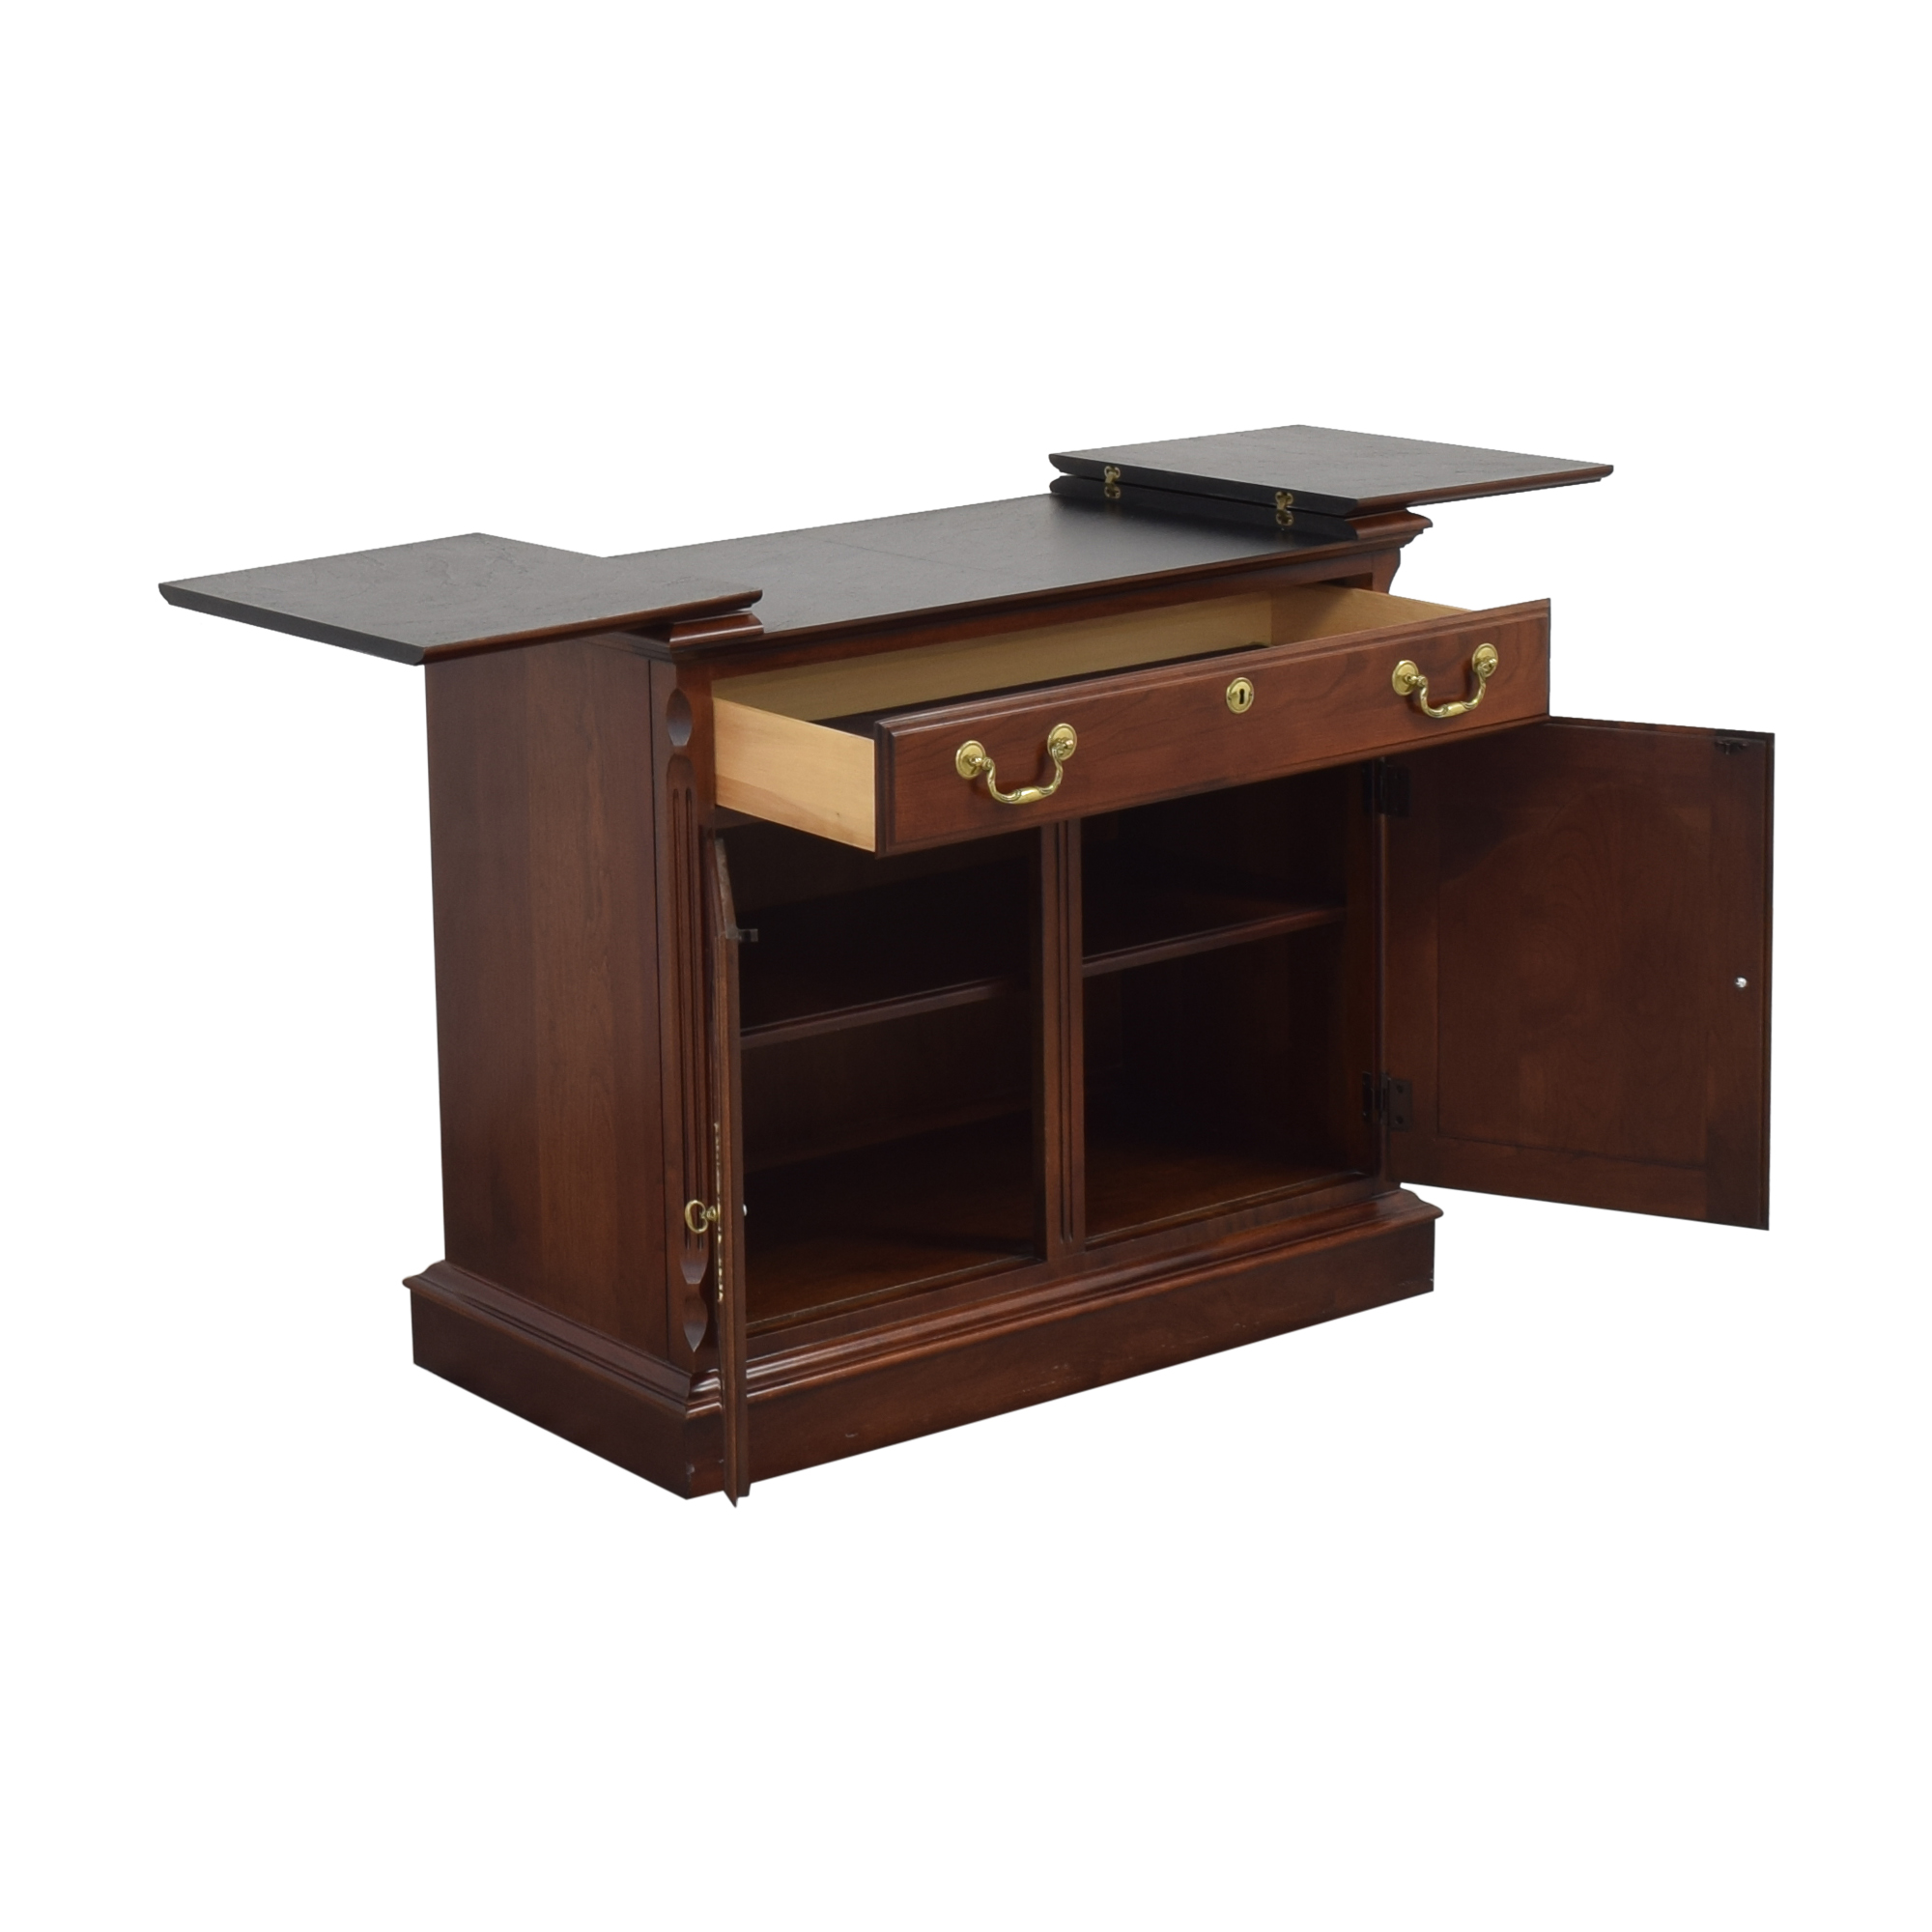 Pennsylvania House Side Server / Cabinets & Sideboards